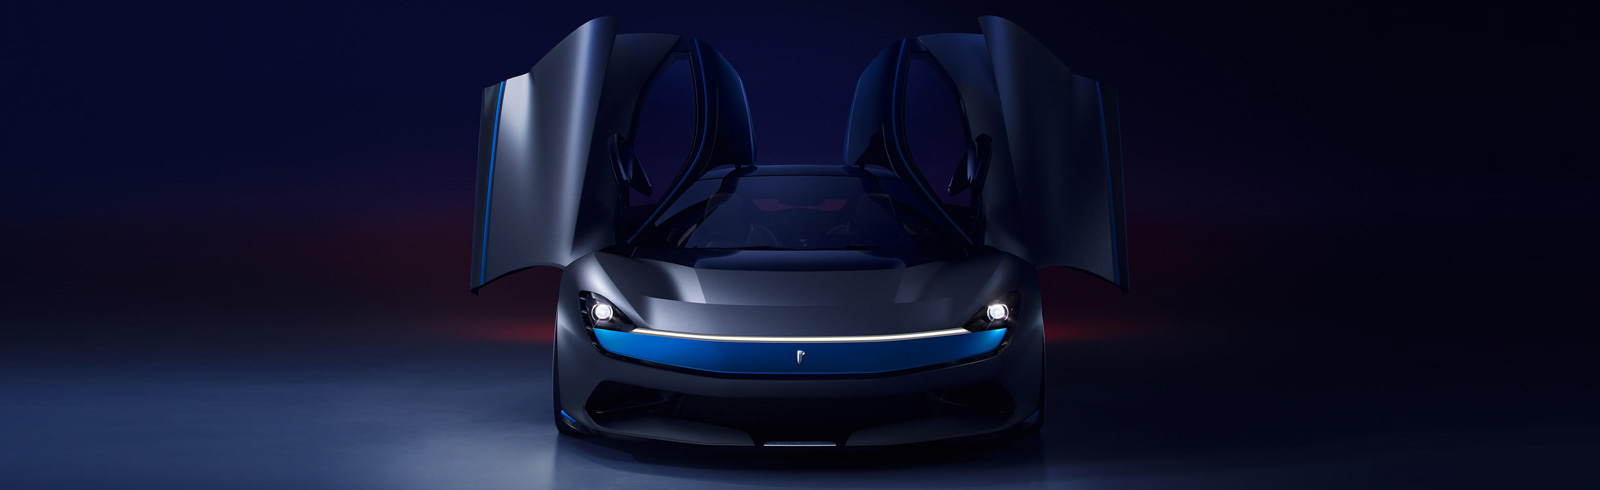 Pininfarina Battista with 1,397 kW of system power unveiled at the Geneva Motor Show